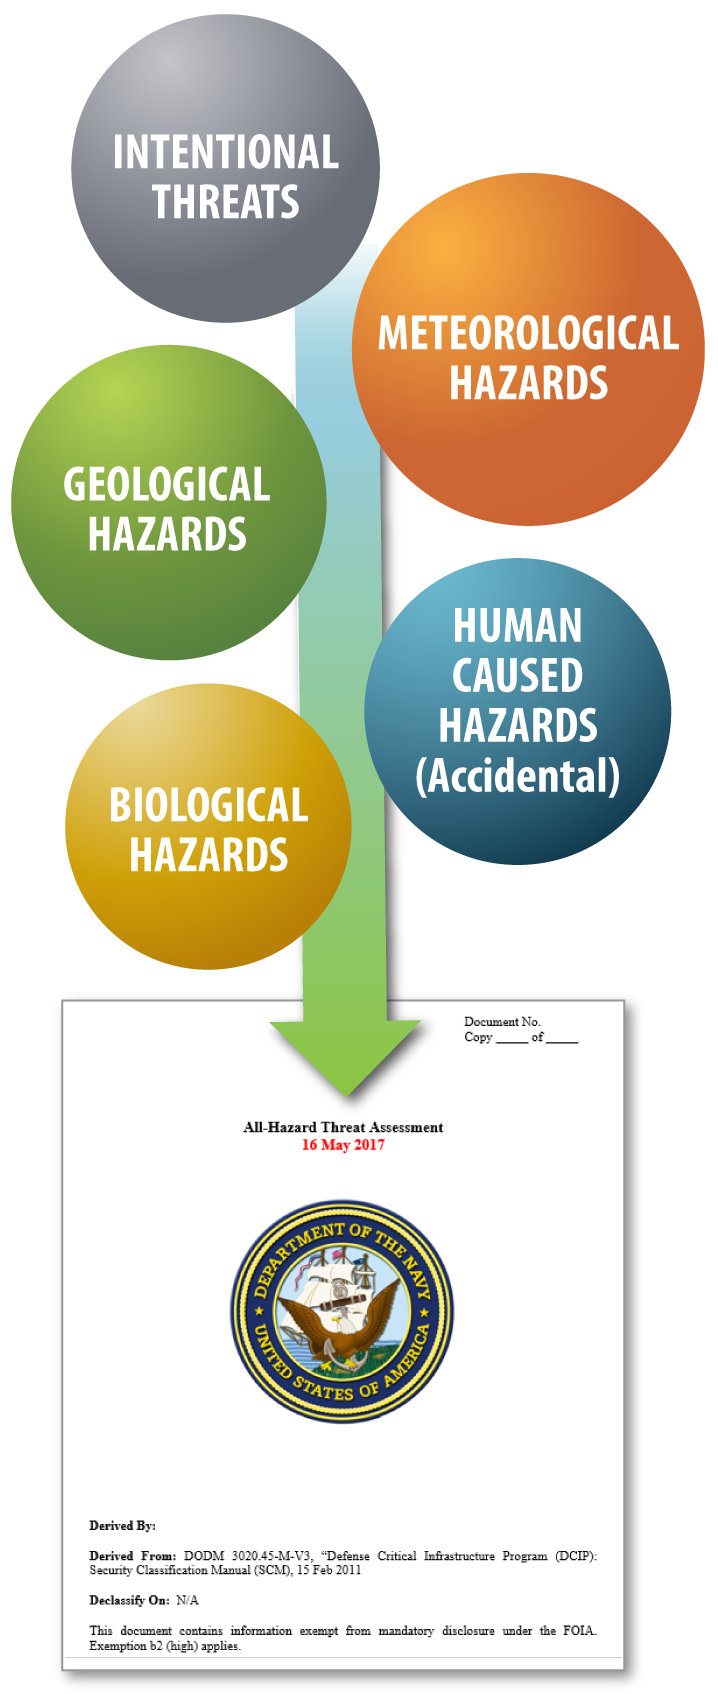 RMC Intel & Analysis All Hazard Threat Assessment